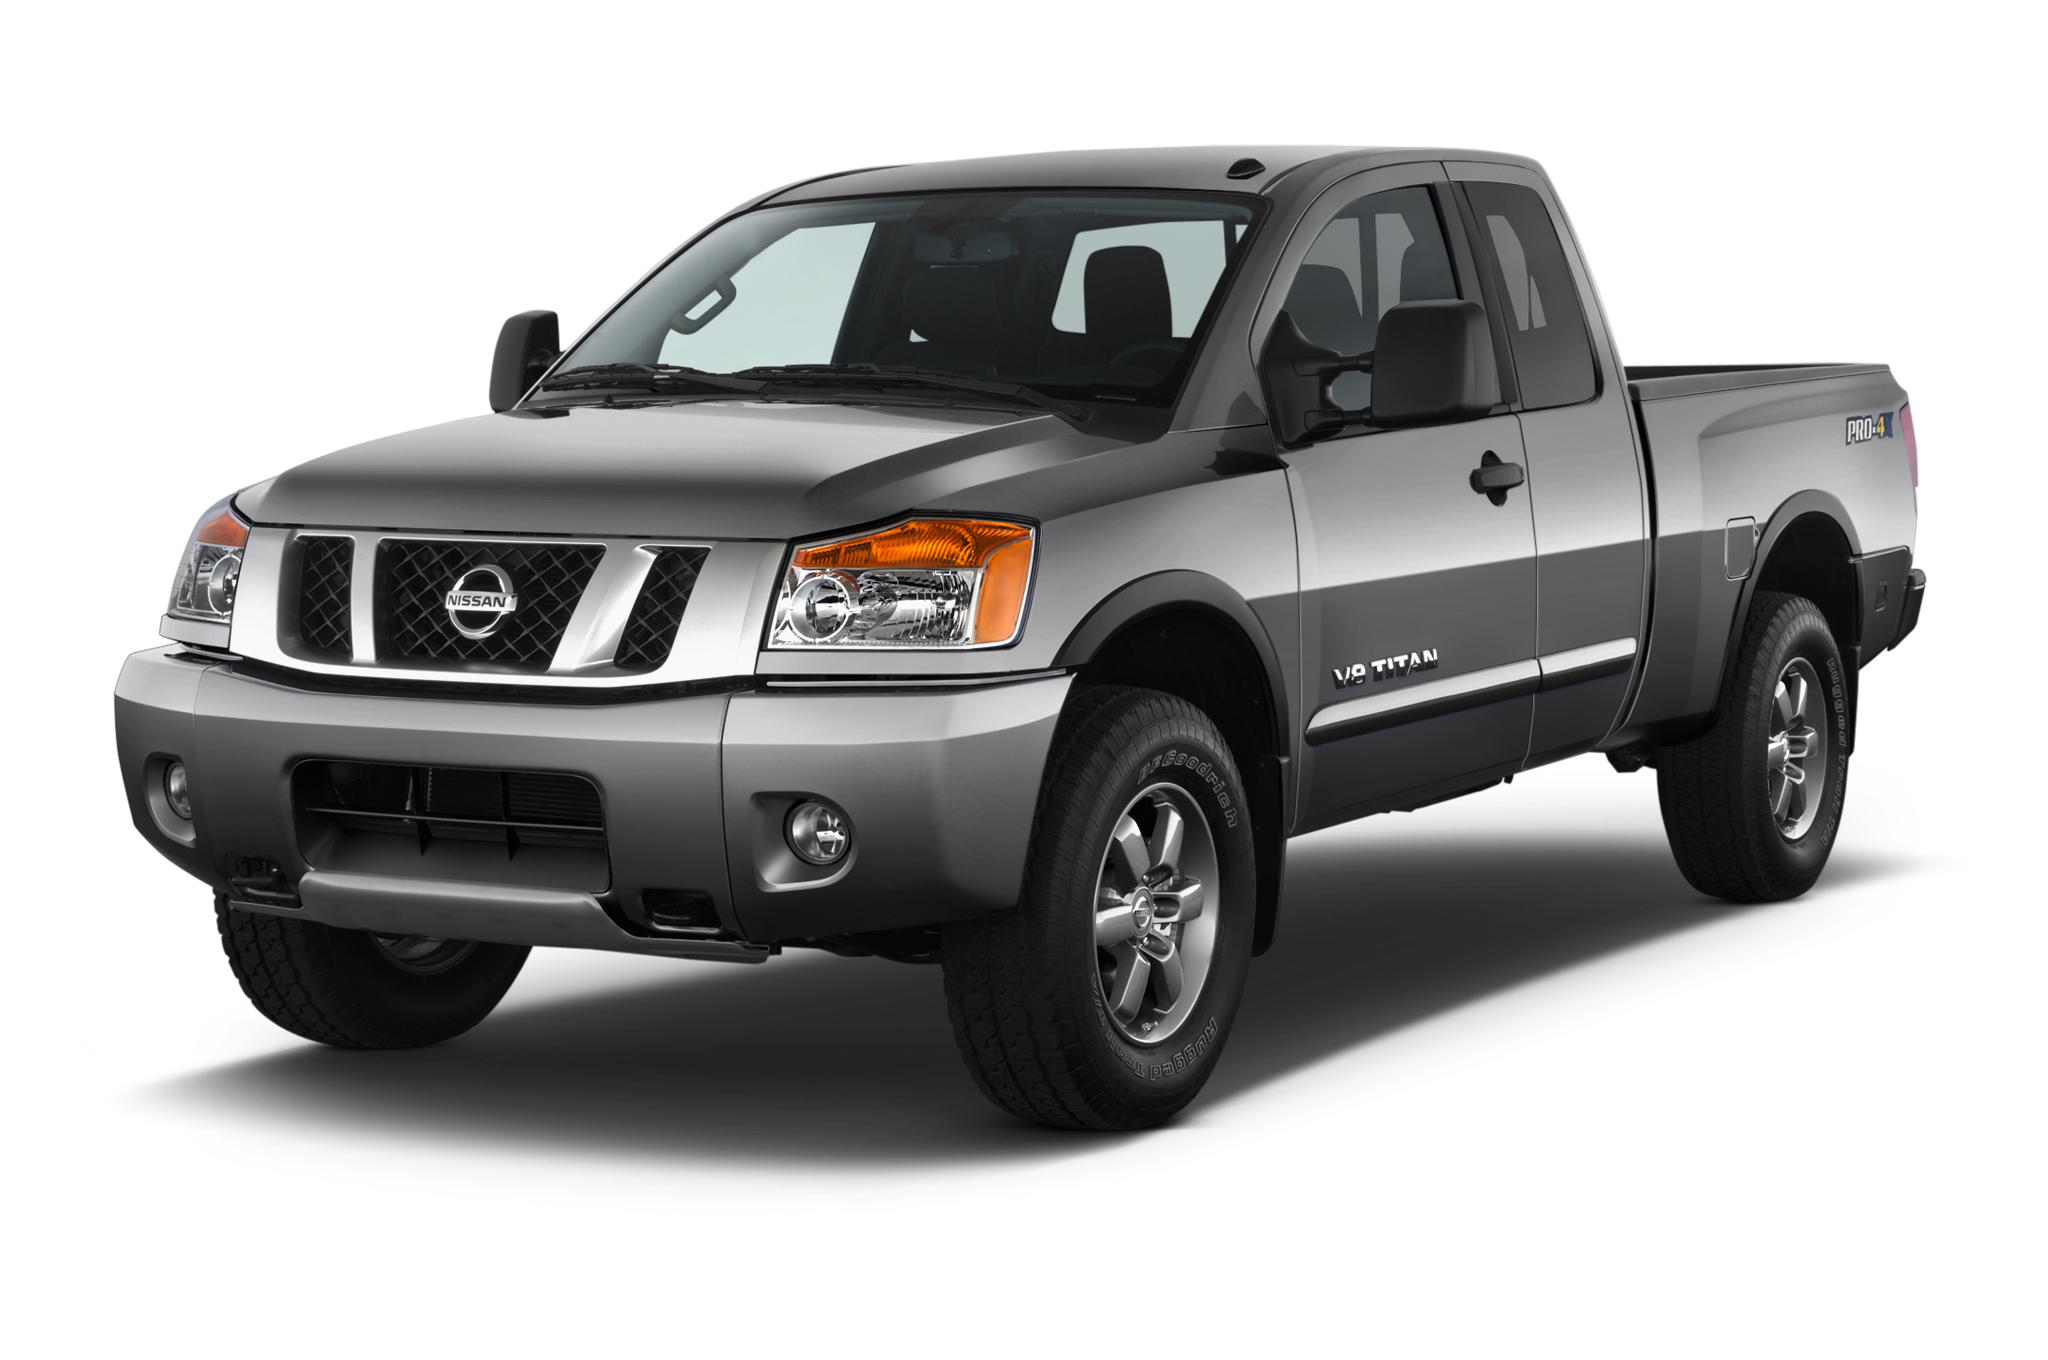 2016 nissan titan pickup spied testing. Black Bedroom Furniture Sets. Home Design Ideas